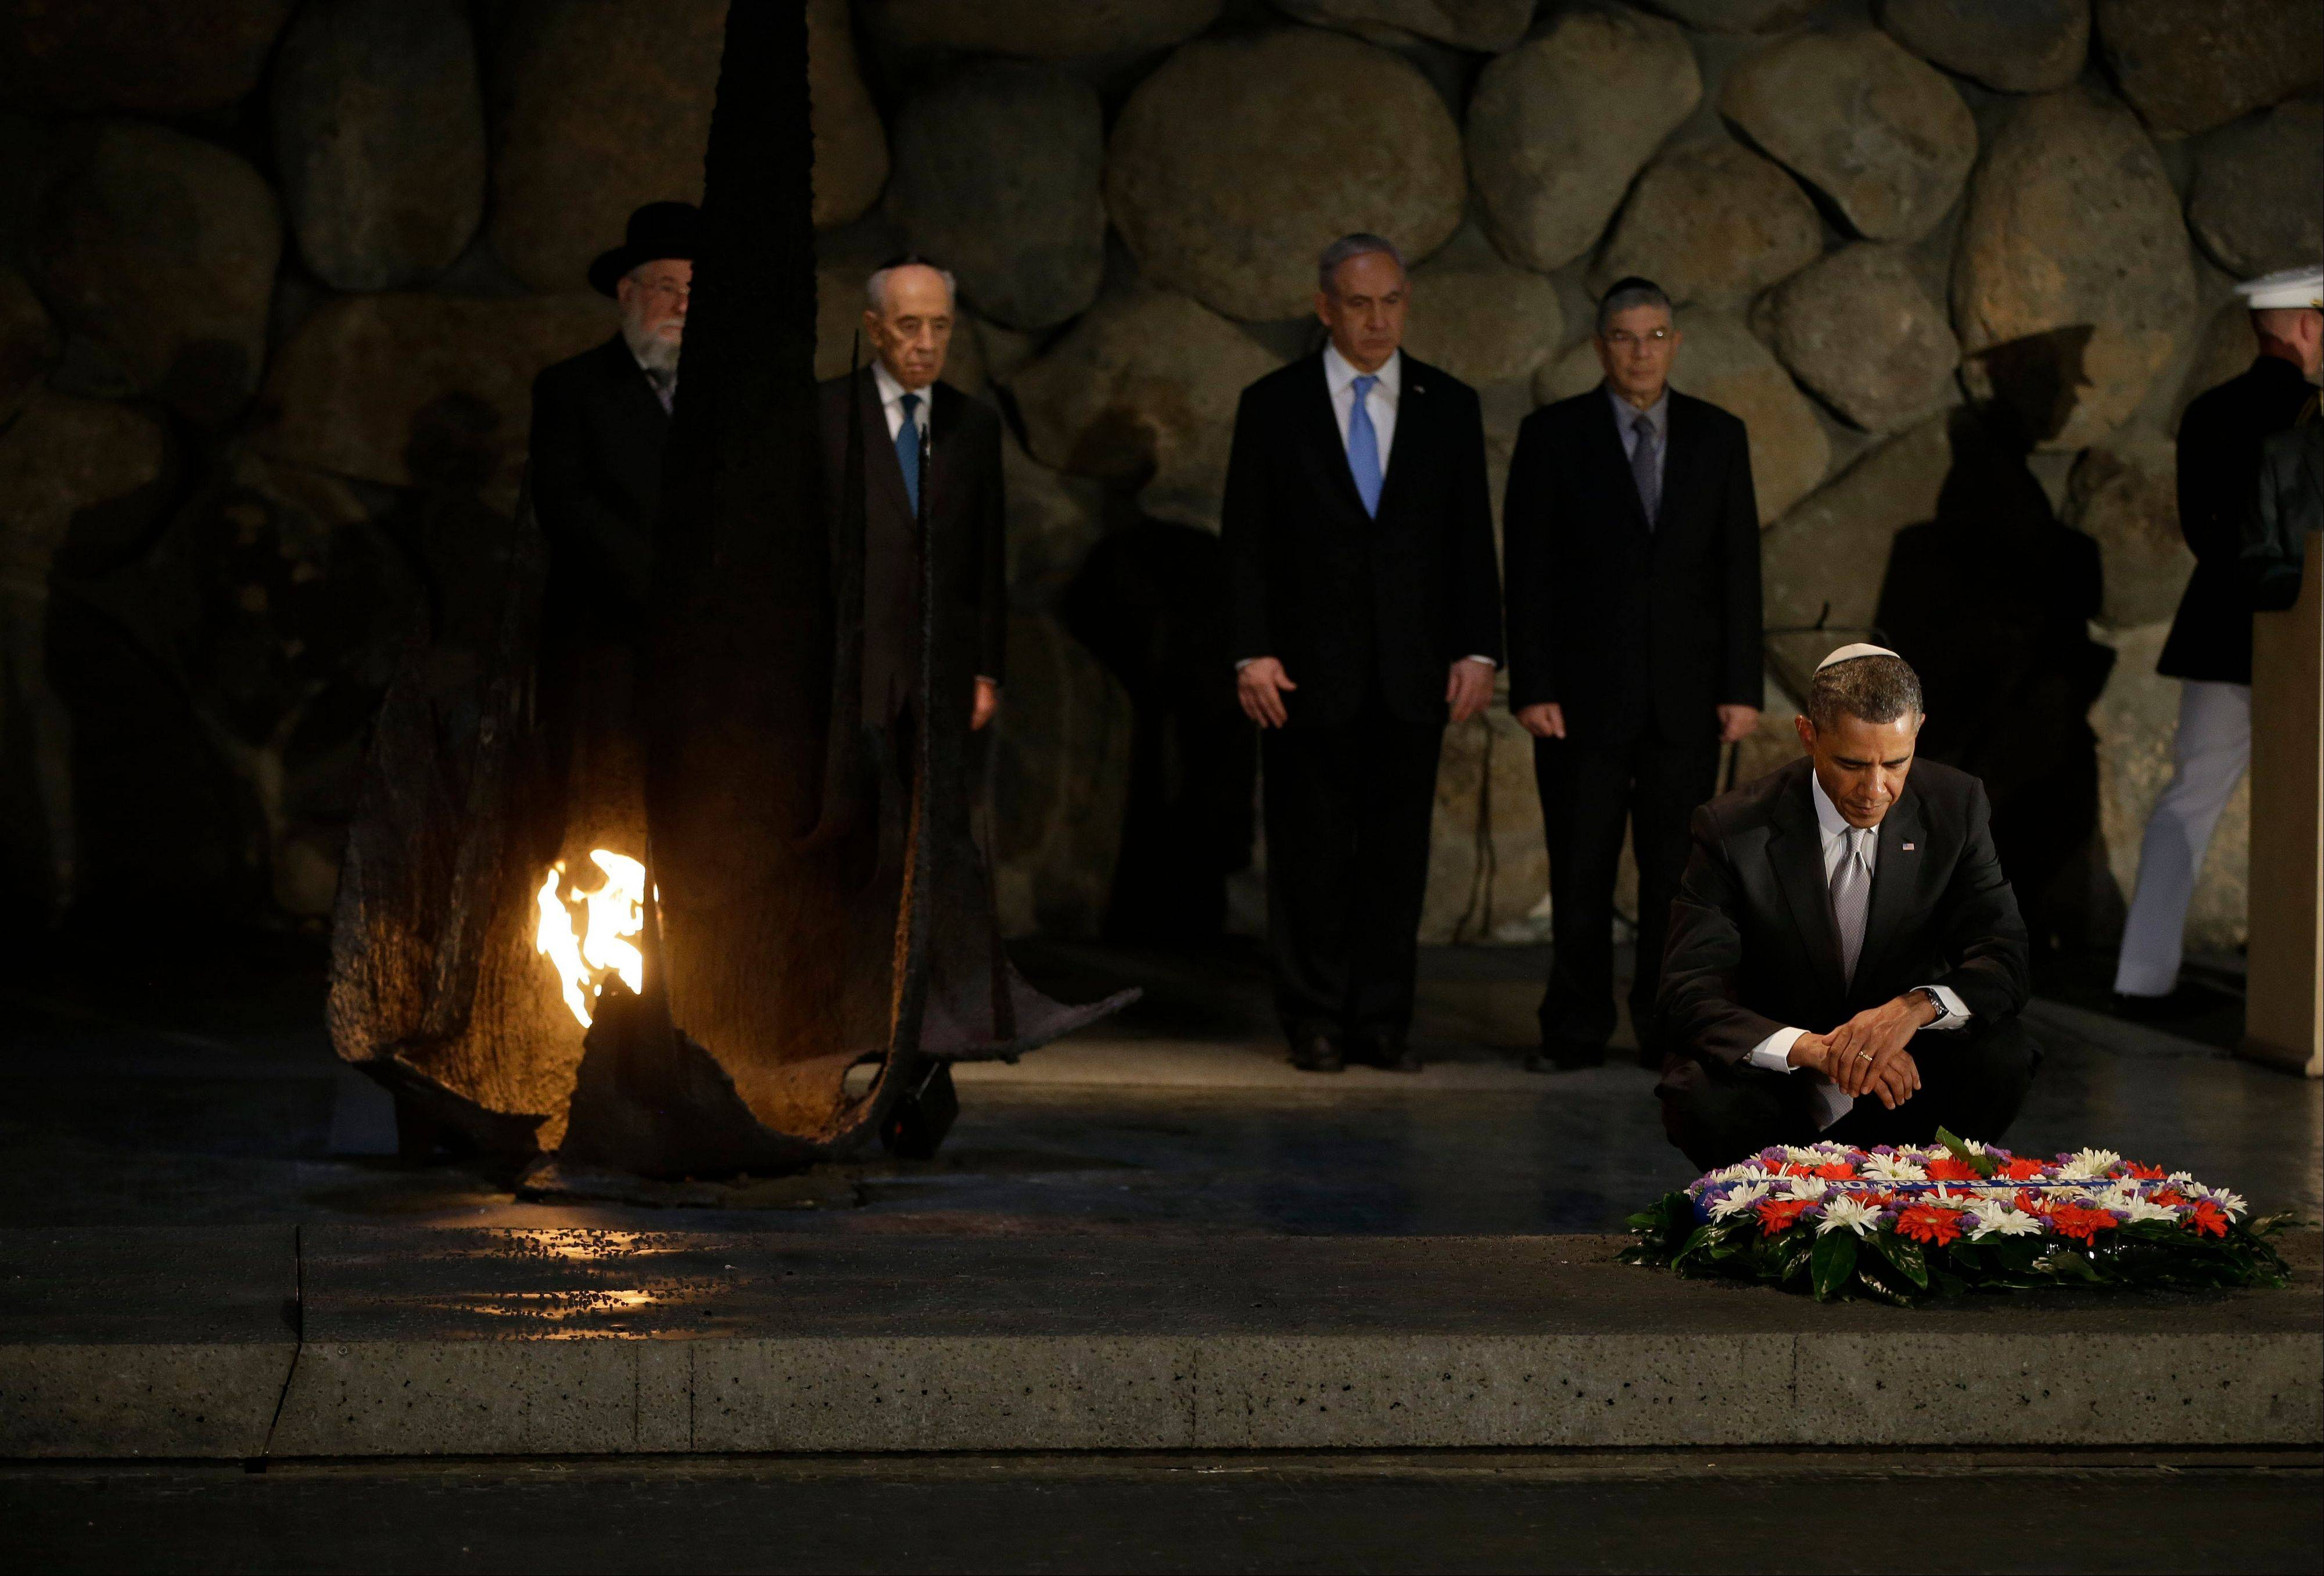 President Barack Obama, right, pauses for after laying a wreath during his visit to the Hall of Remembrance at the Yad Vashem Holocaust Memorial in Jerusalem, Israel, Friday, March 22, 2013. Standing behind Obama are from left to right, Rabbi Israel Meir Lau, left, Israeli President Shimon Peres, Israeli Prime Minister Benjamin Netanyahu, and Chairman of the Memorial Avner Shalev.